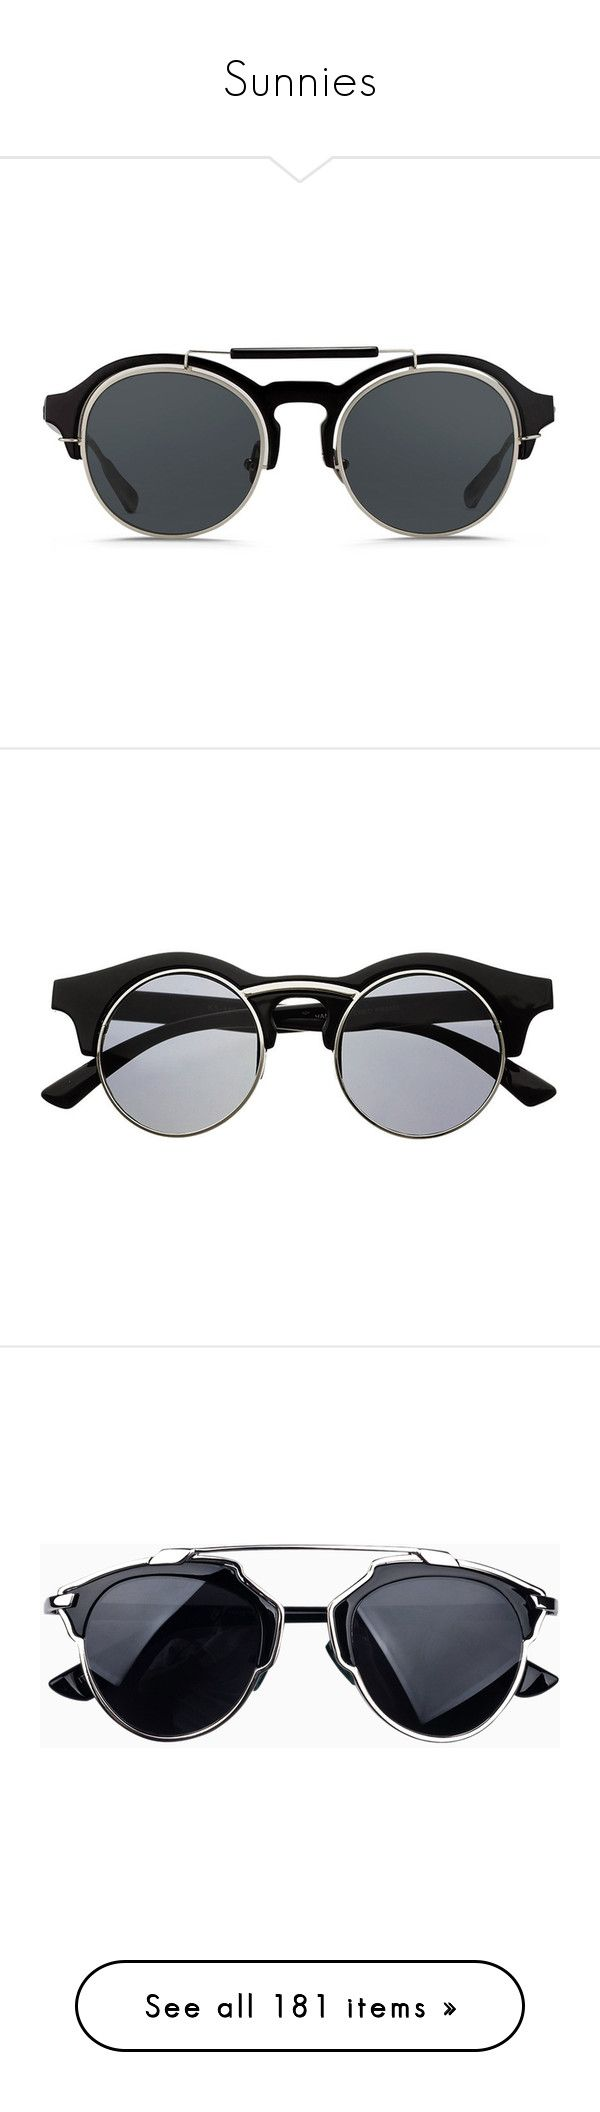 """Sunnies"" by baludna ❤ liked on Polyvore featuring accessories, eyewear, sunglasses, glasses, black, round sunnies, round eyewear, rounded sunglasses, summer sunglasses and round black glasses"